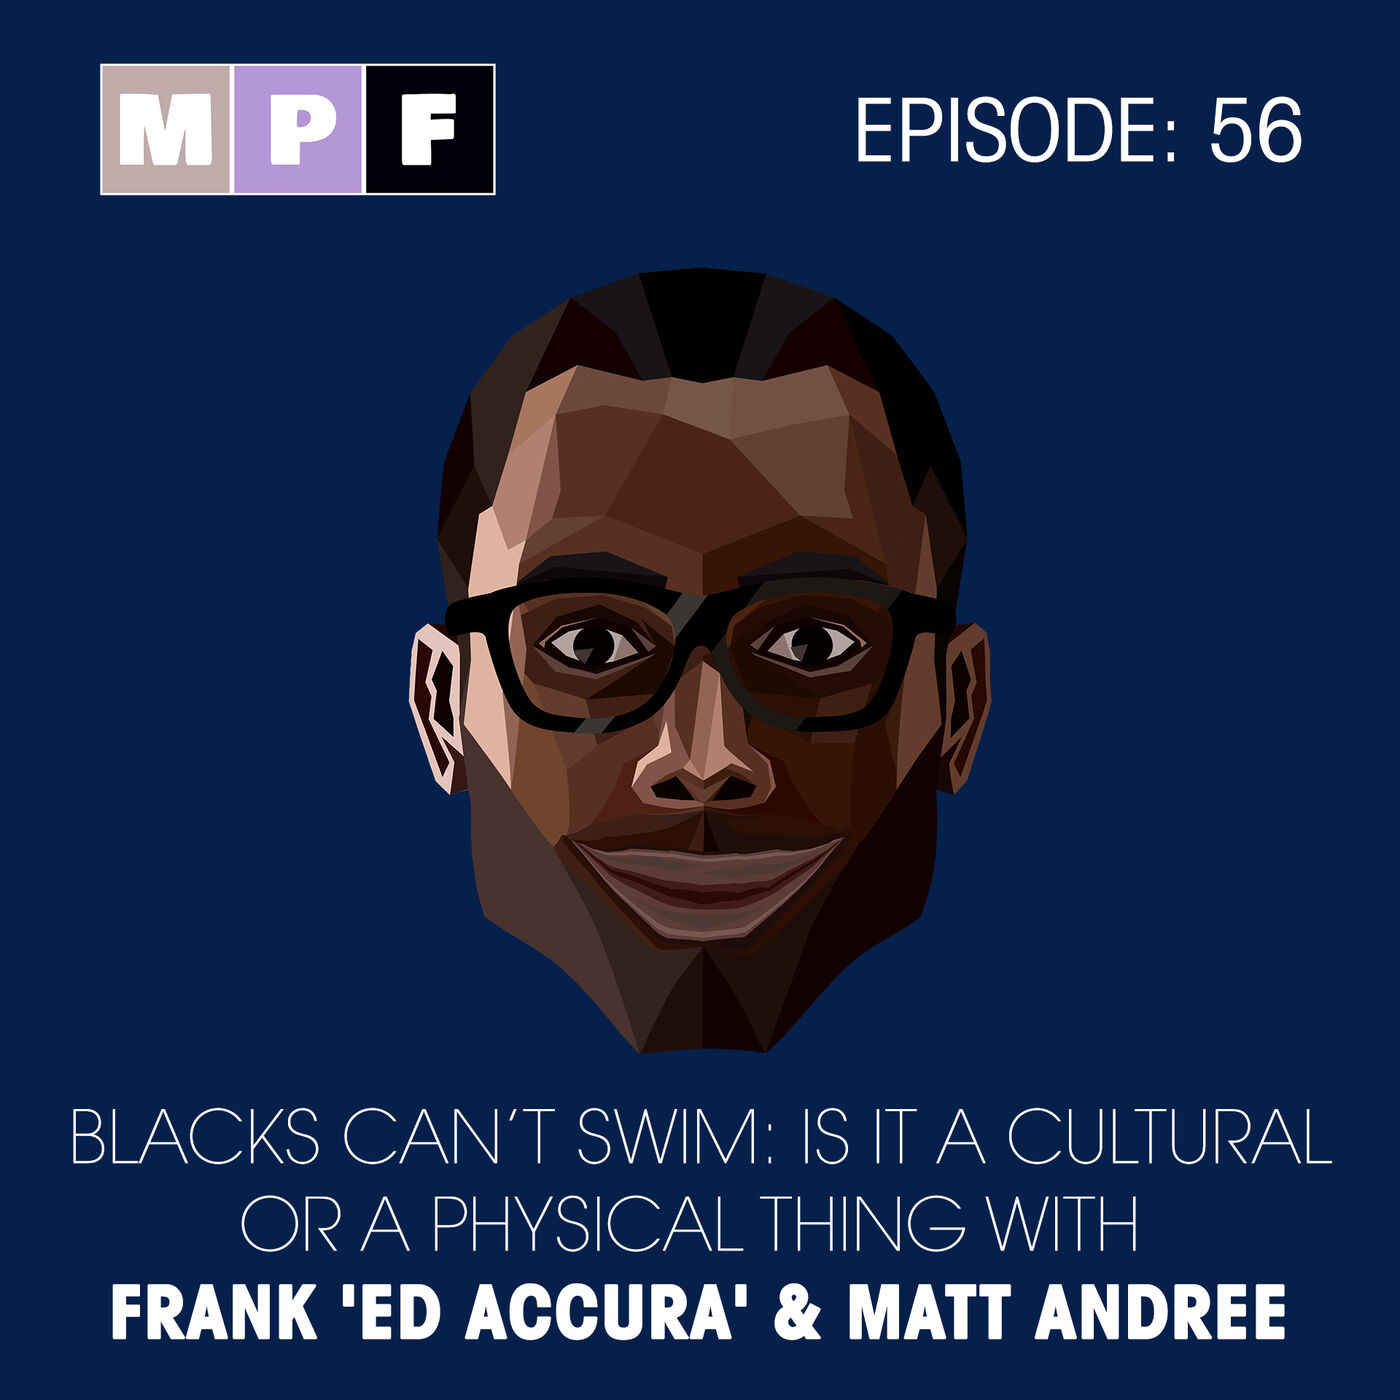 Blacks Can't Swim: Is it a Cultural or a Physical Thing with Frank 'Ed Accura' & Matt Andree